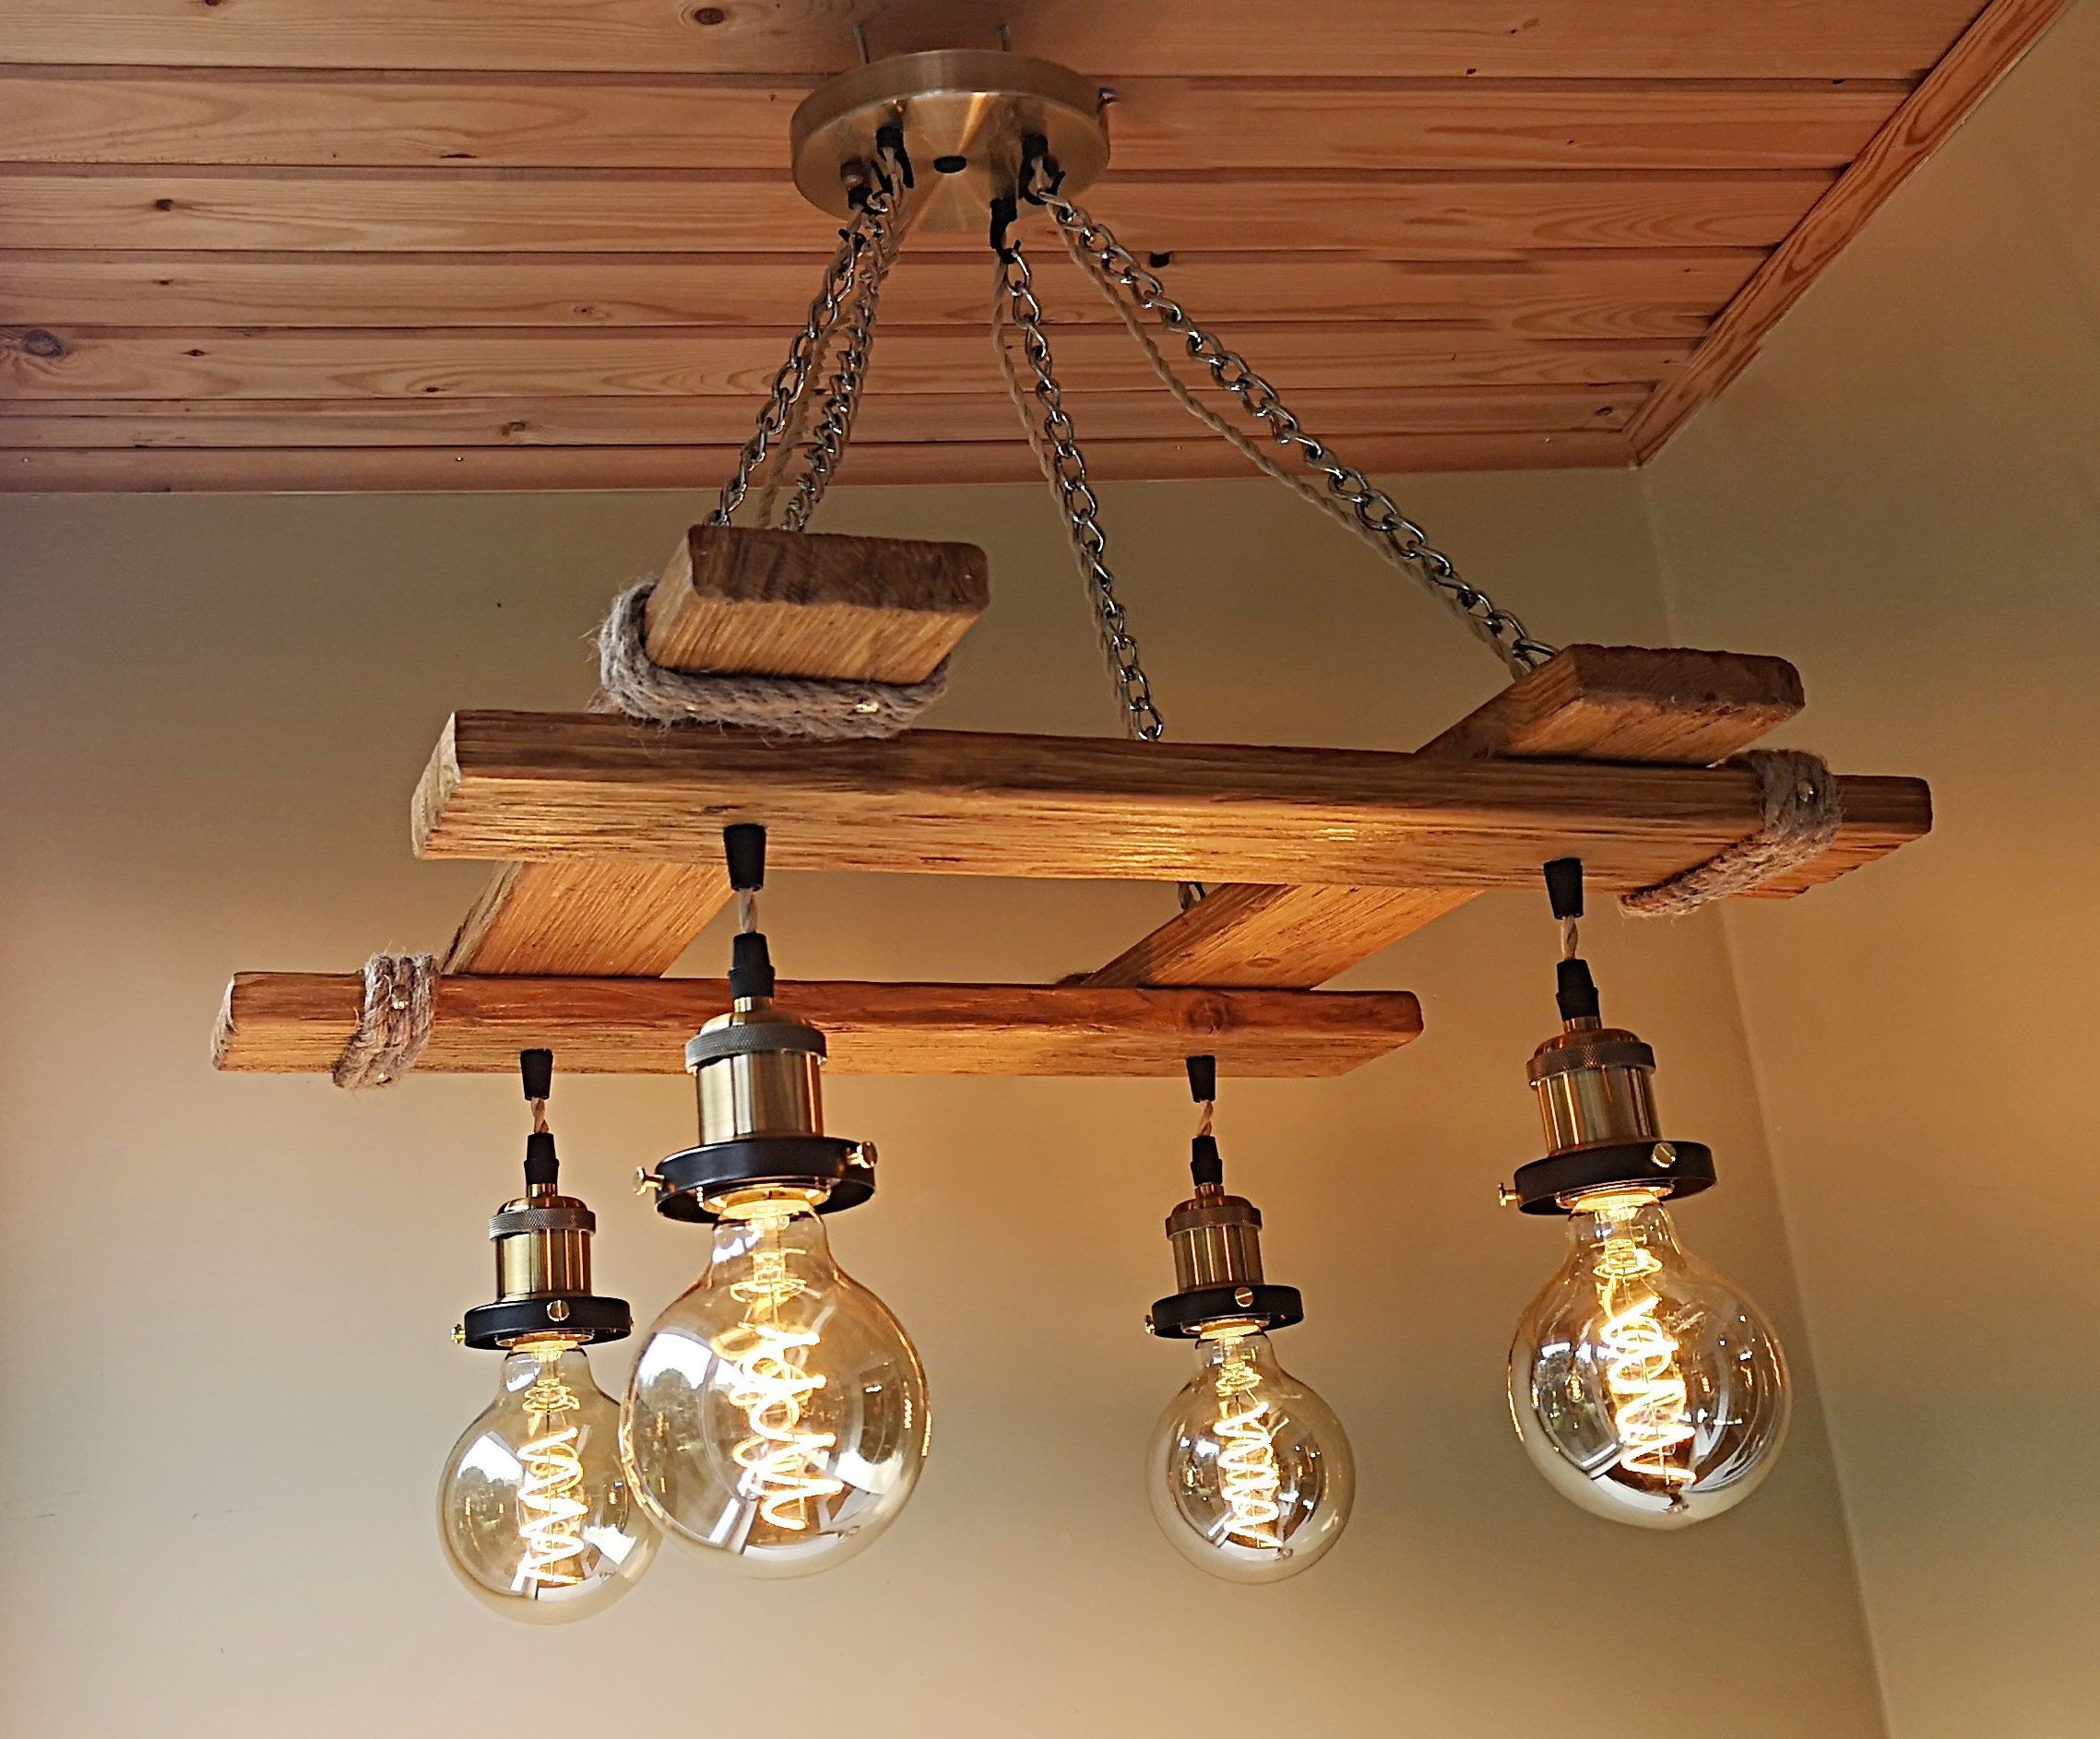 Rustic light fixture hanging light rustic lighting industrial pendant light wood chandelier rustic light farmhouse light dining